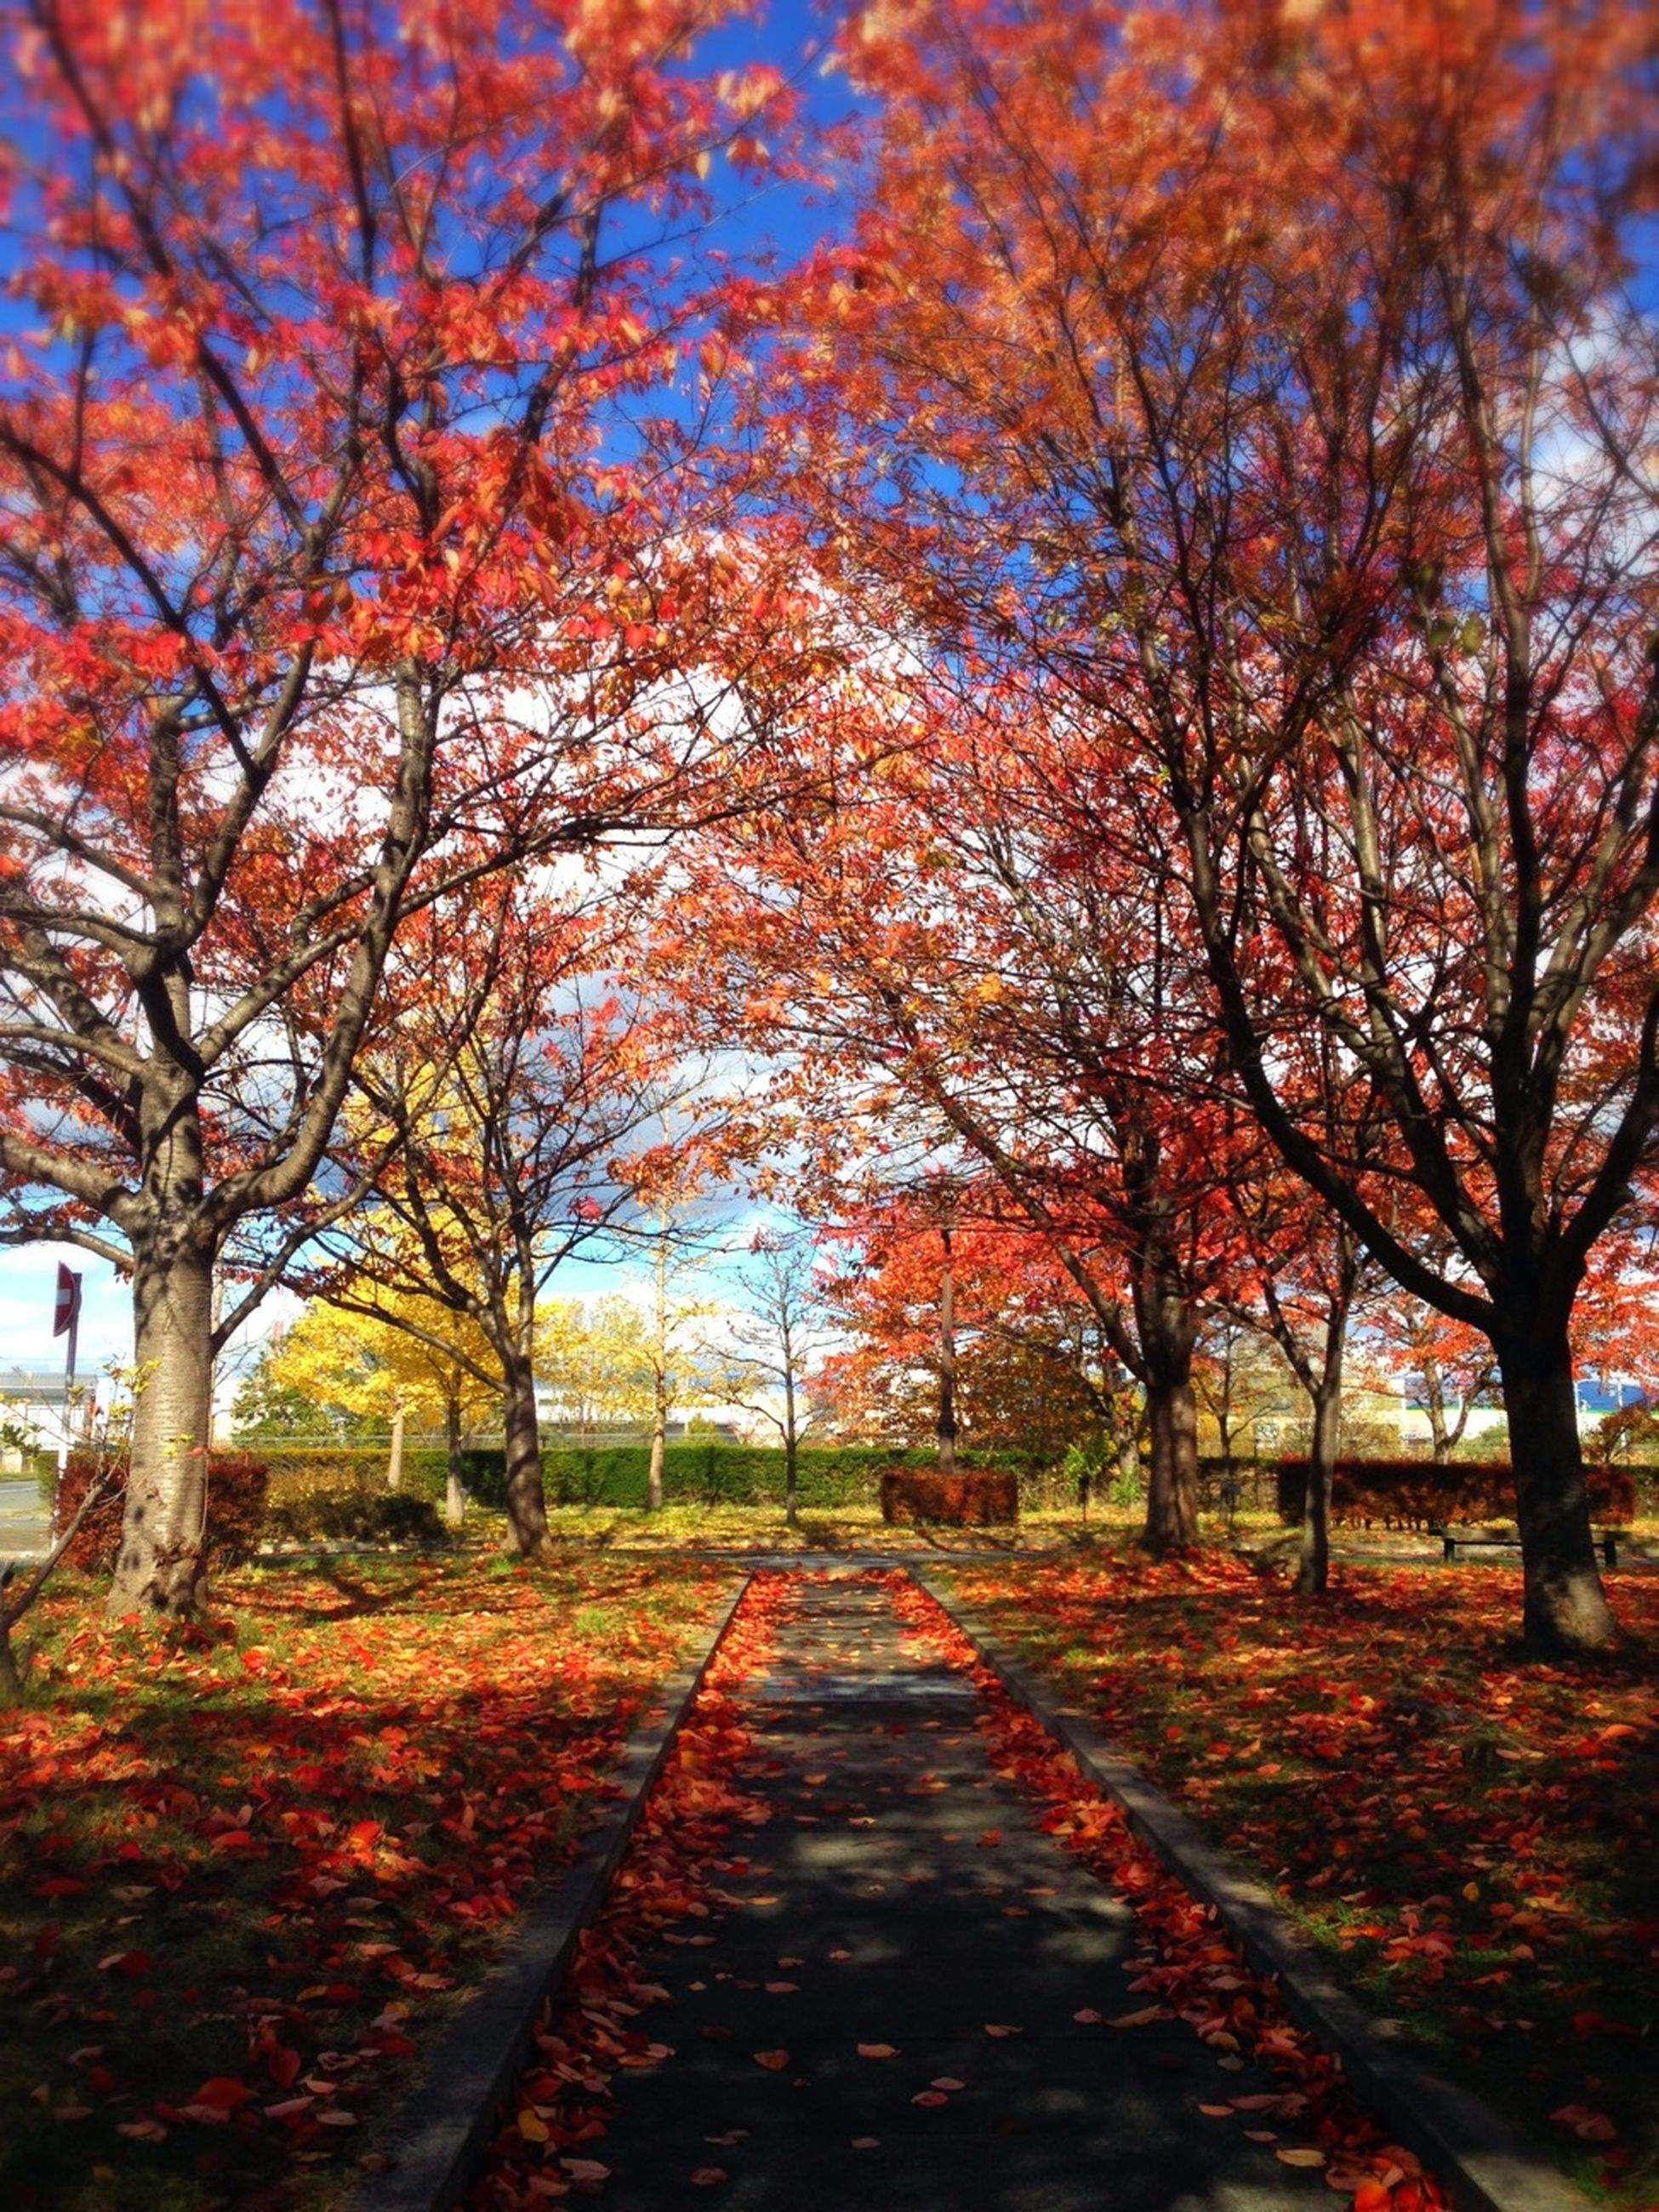 tree, autumn, change, the way forward, season, tranquility, nature, diminishing perspective, beauty in nature, branch, tranquil scene, footpath, park - man made space, scenics, growth, orange color, leaf, treelined, vanishing point, road